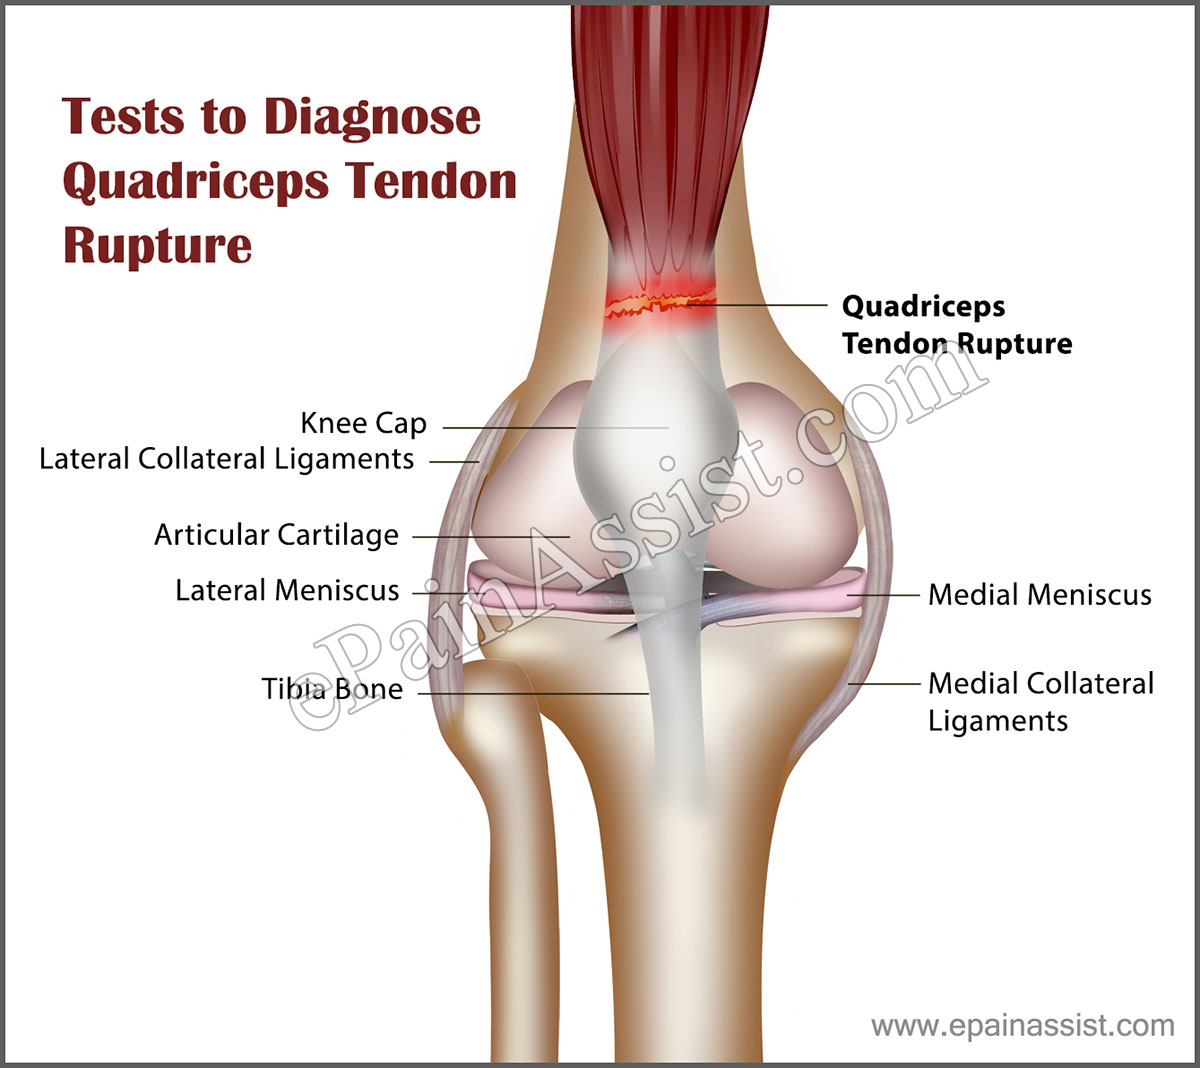 Tests to Diagnose Quadriceps Tendon Rupture (QTR)